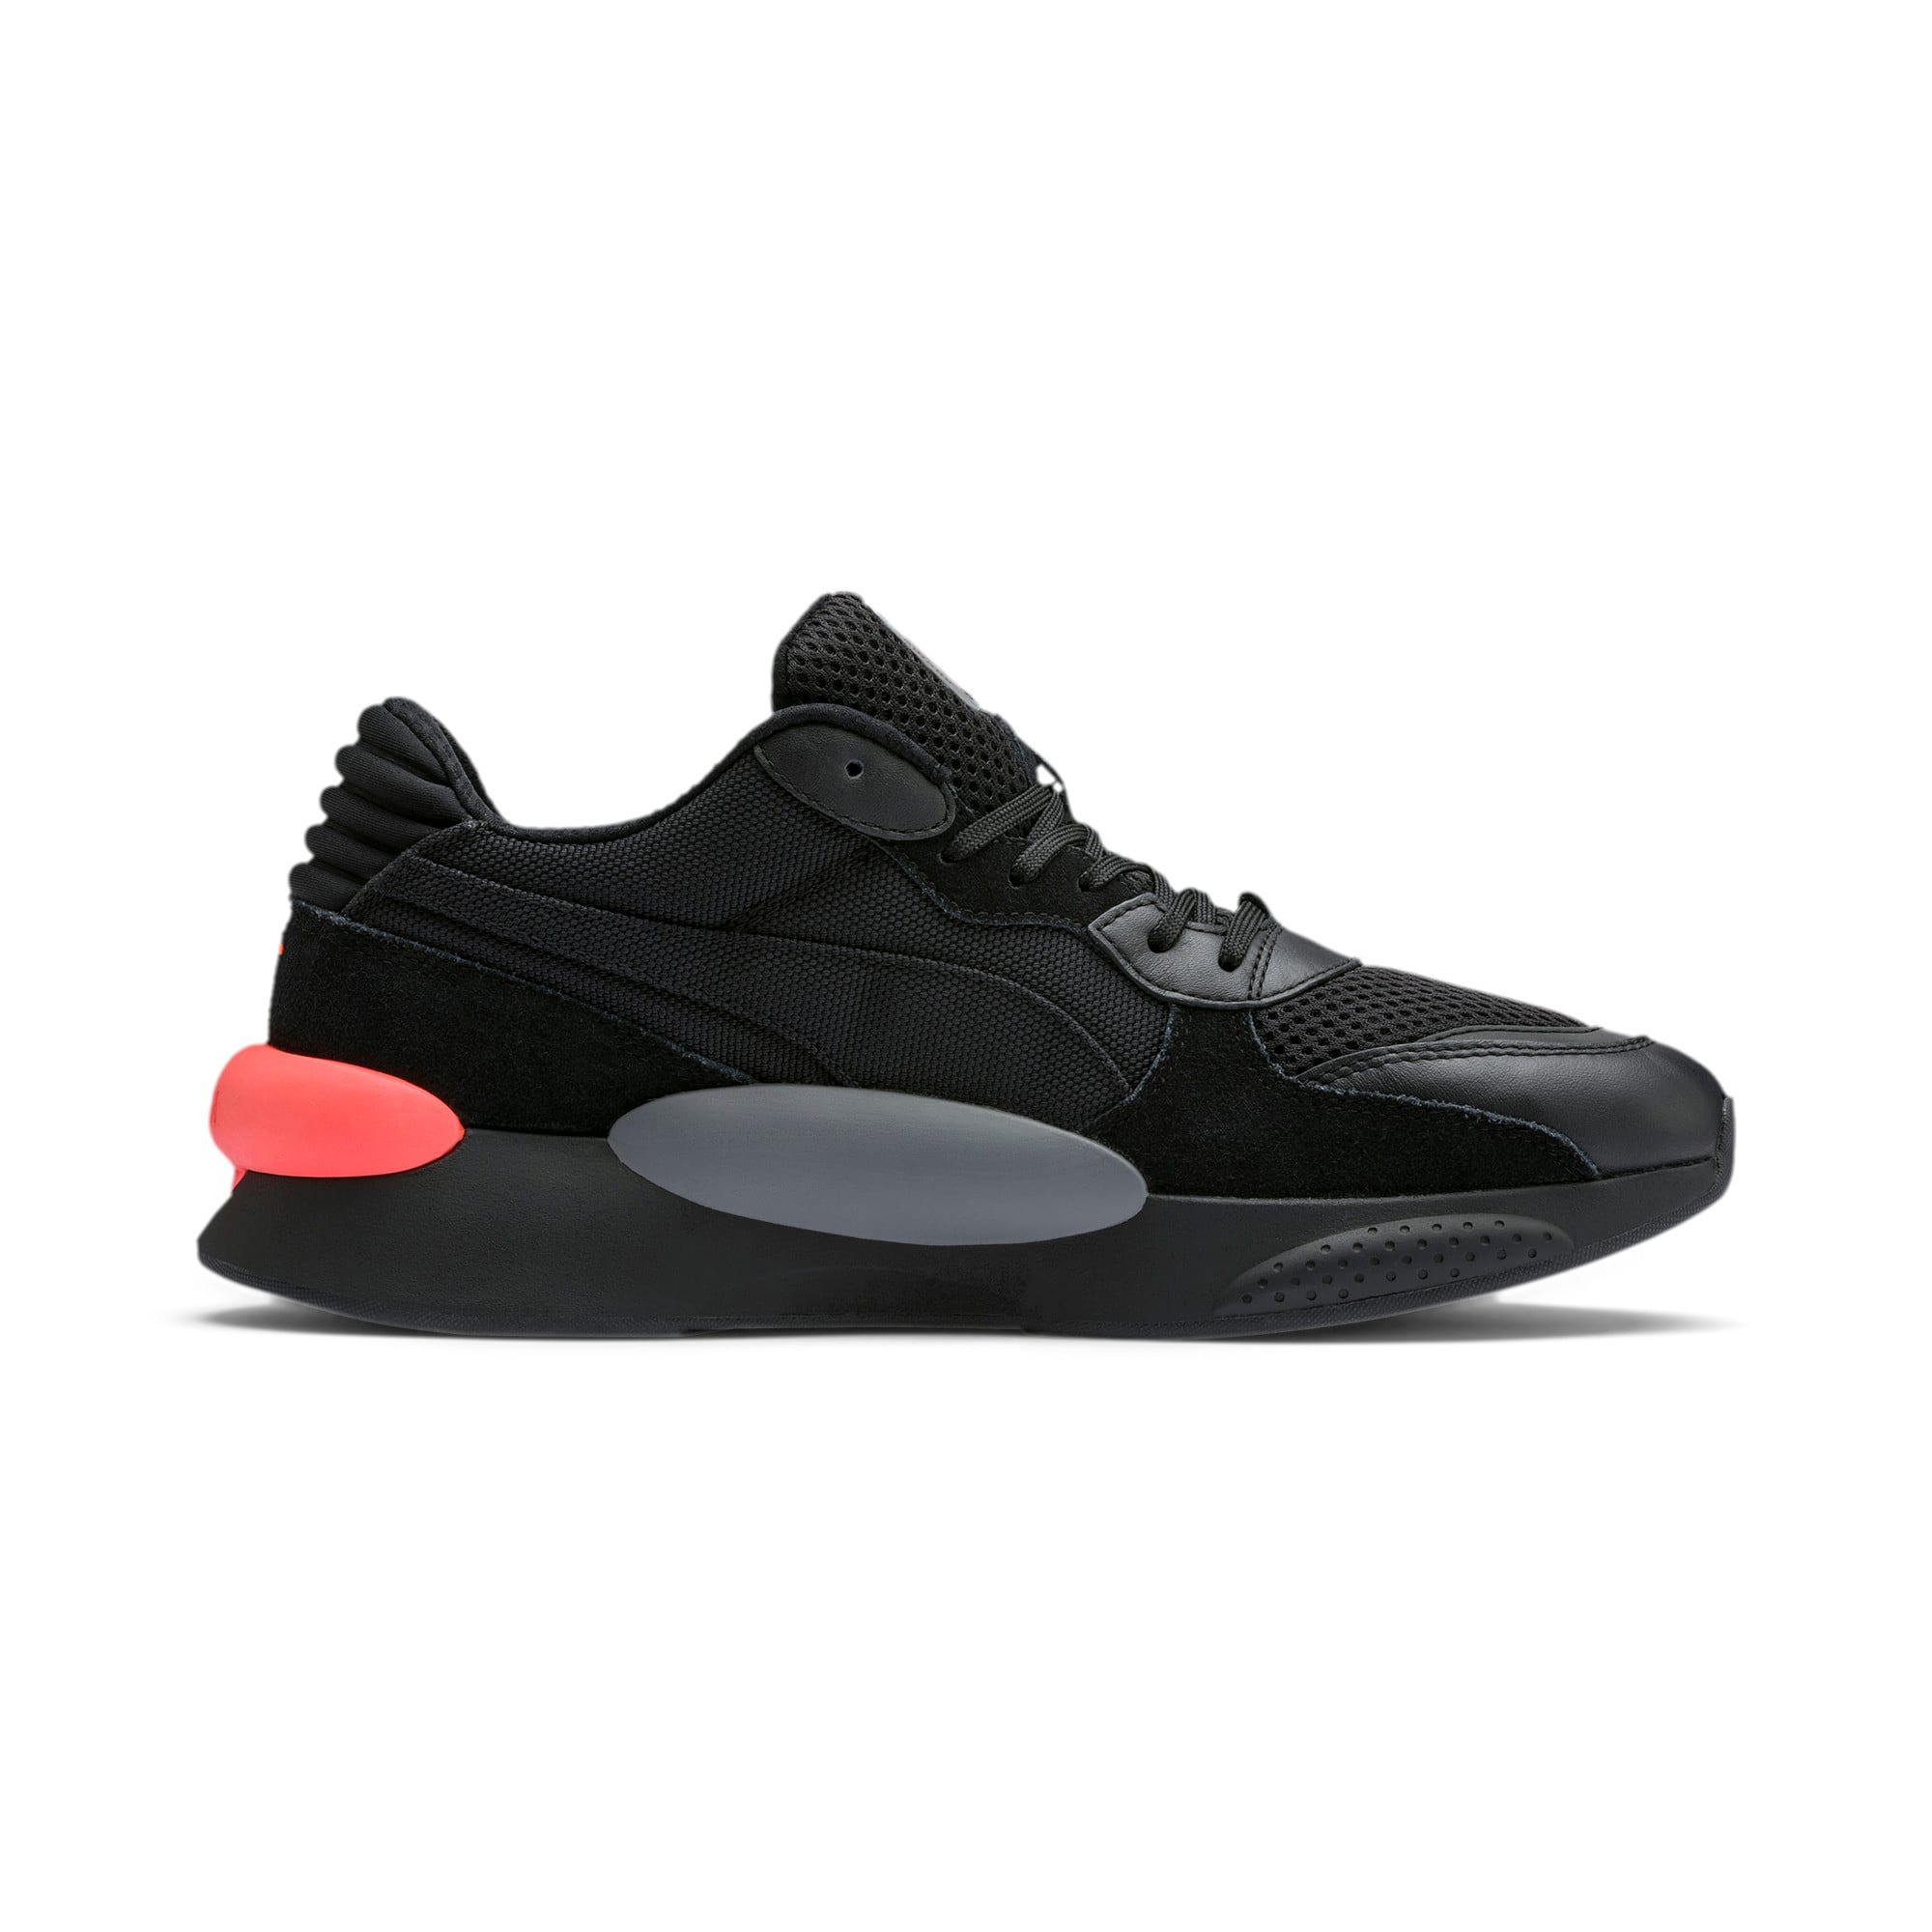 Thumbnail 5 of RS 9.8 コズミック スニーカー, Puma Black, medium-JPN